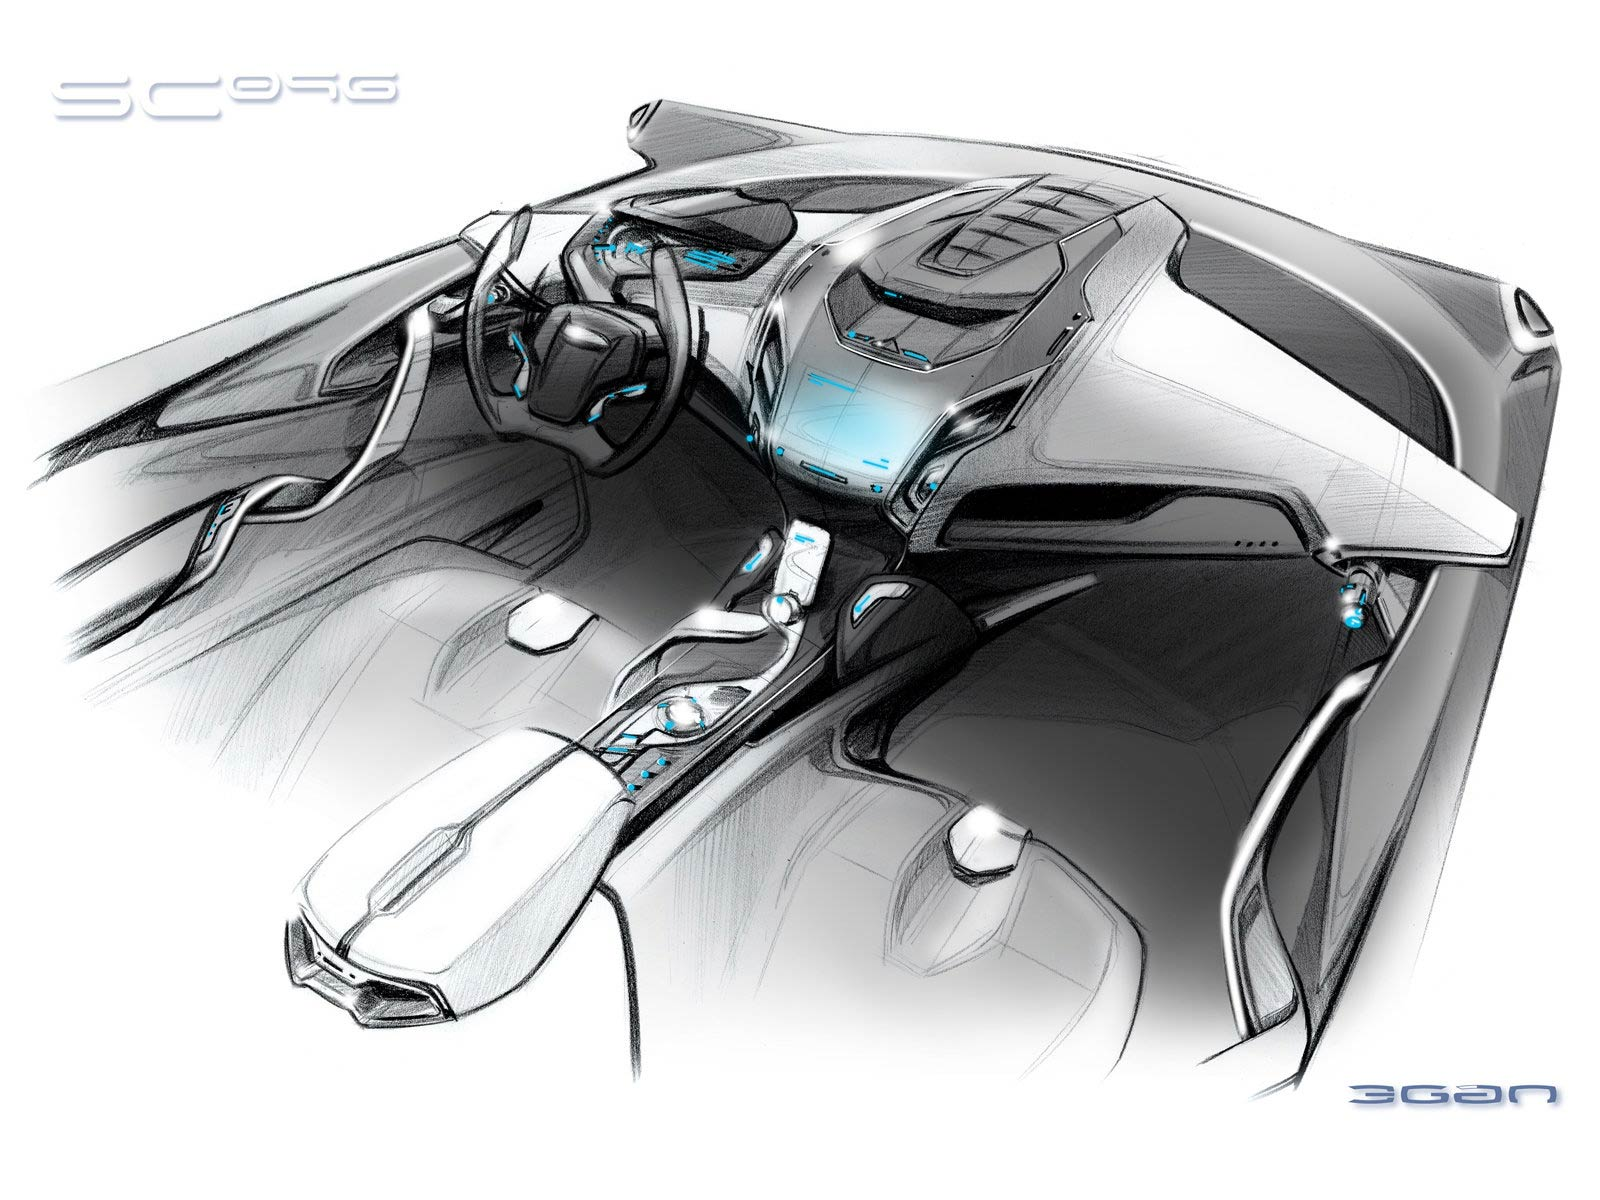 Ford iosis max concept interior design sketch car body - Car interior design ...